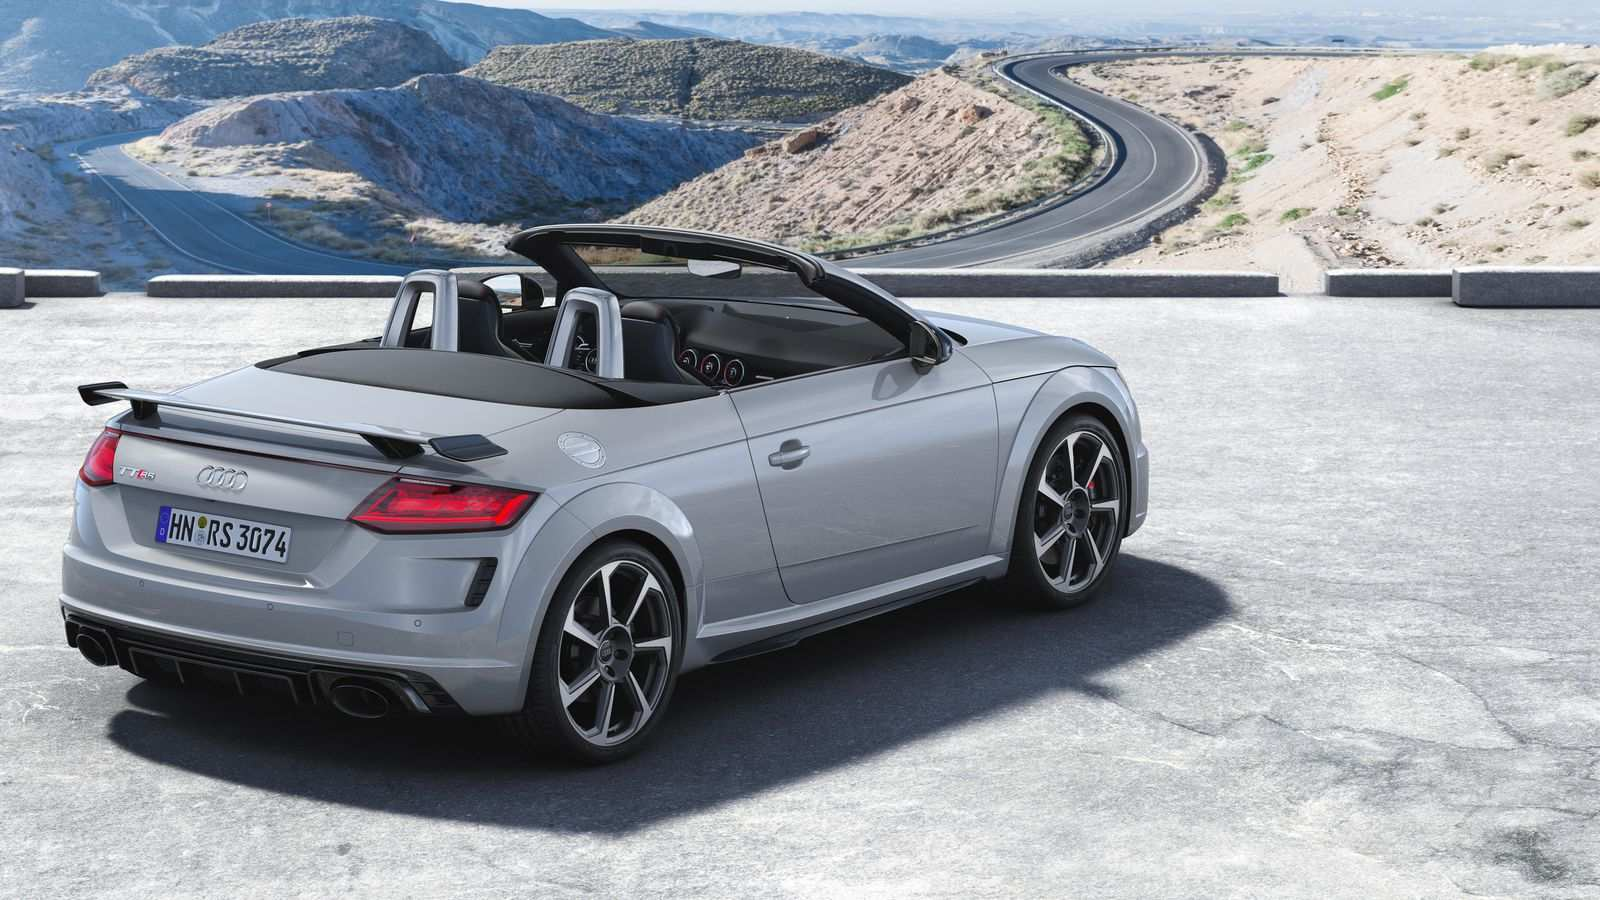 47 The Audi Tt Roadster 2020 Style for Audi Tt Roadster 2020